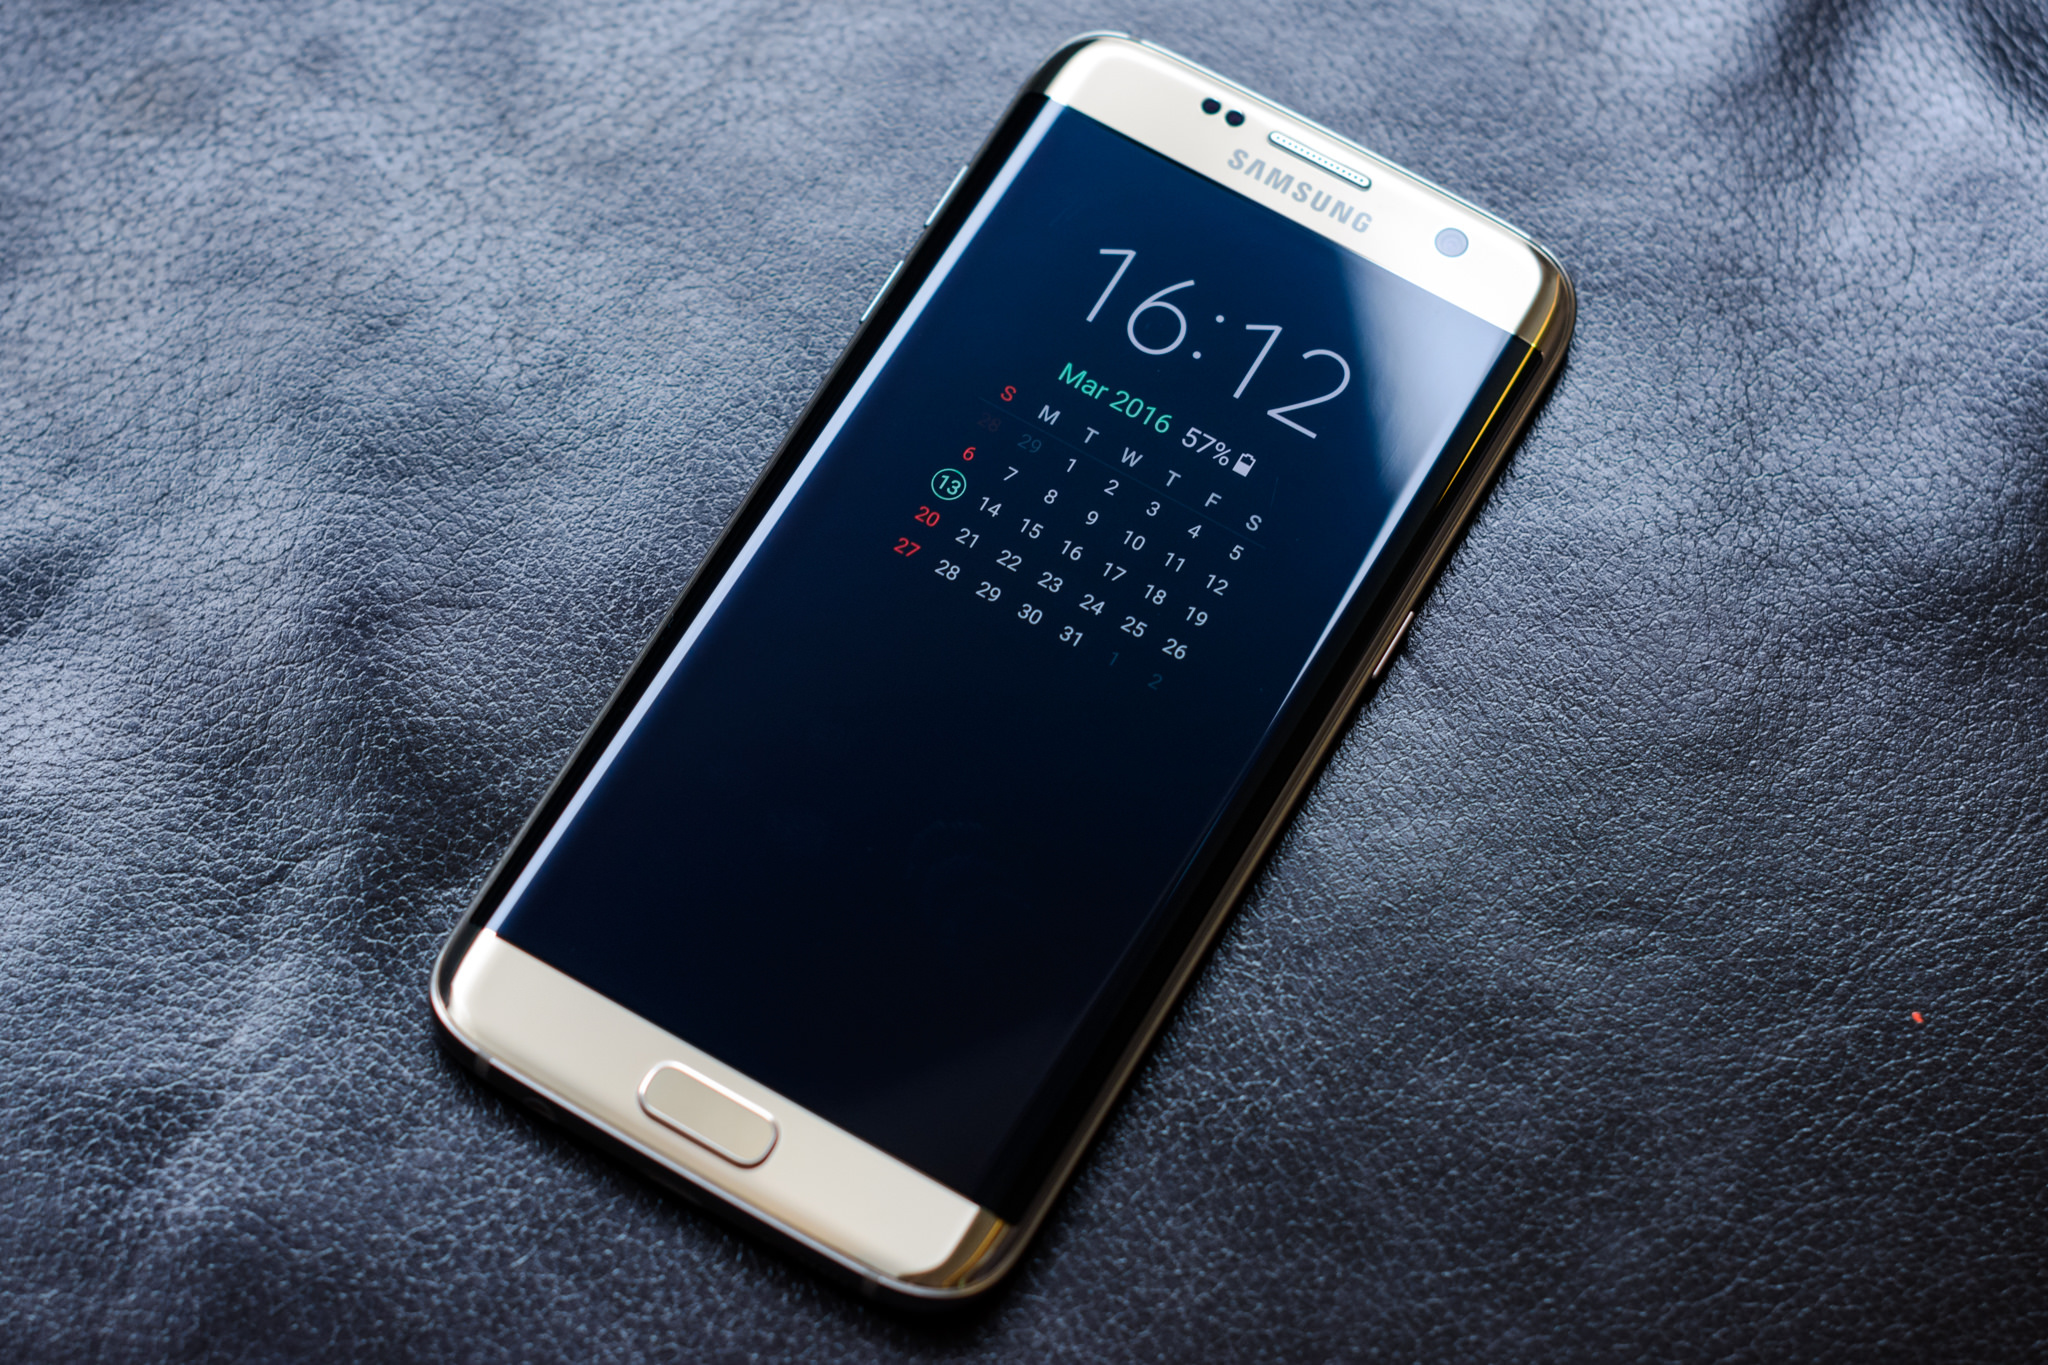 Galaxy S8 Rumors 5.7-inch Display